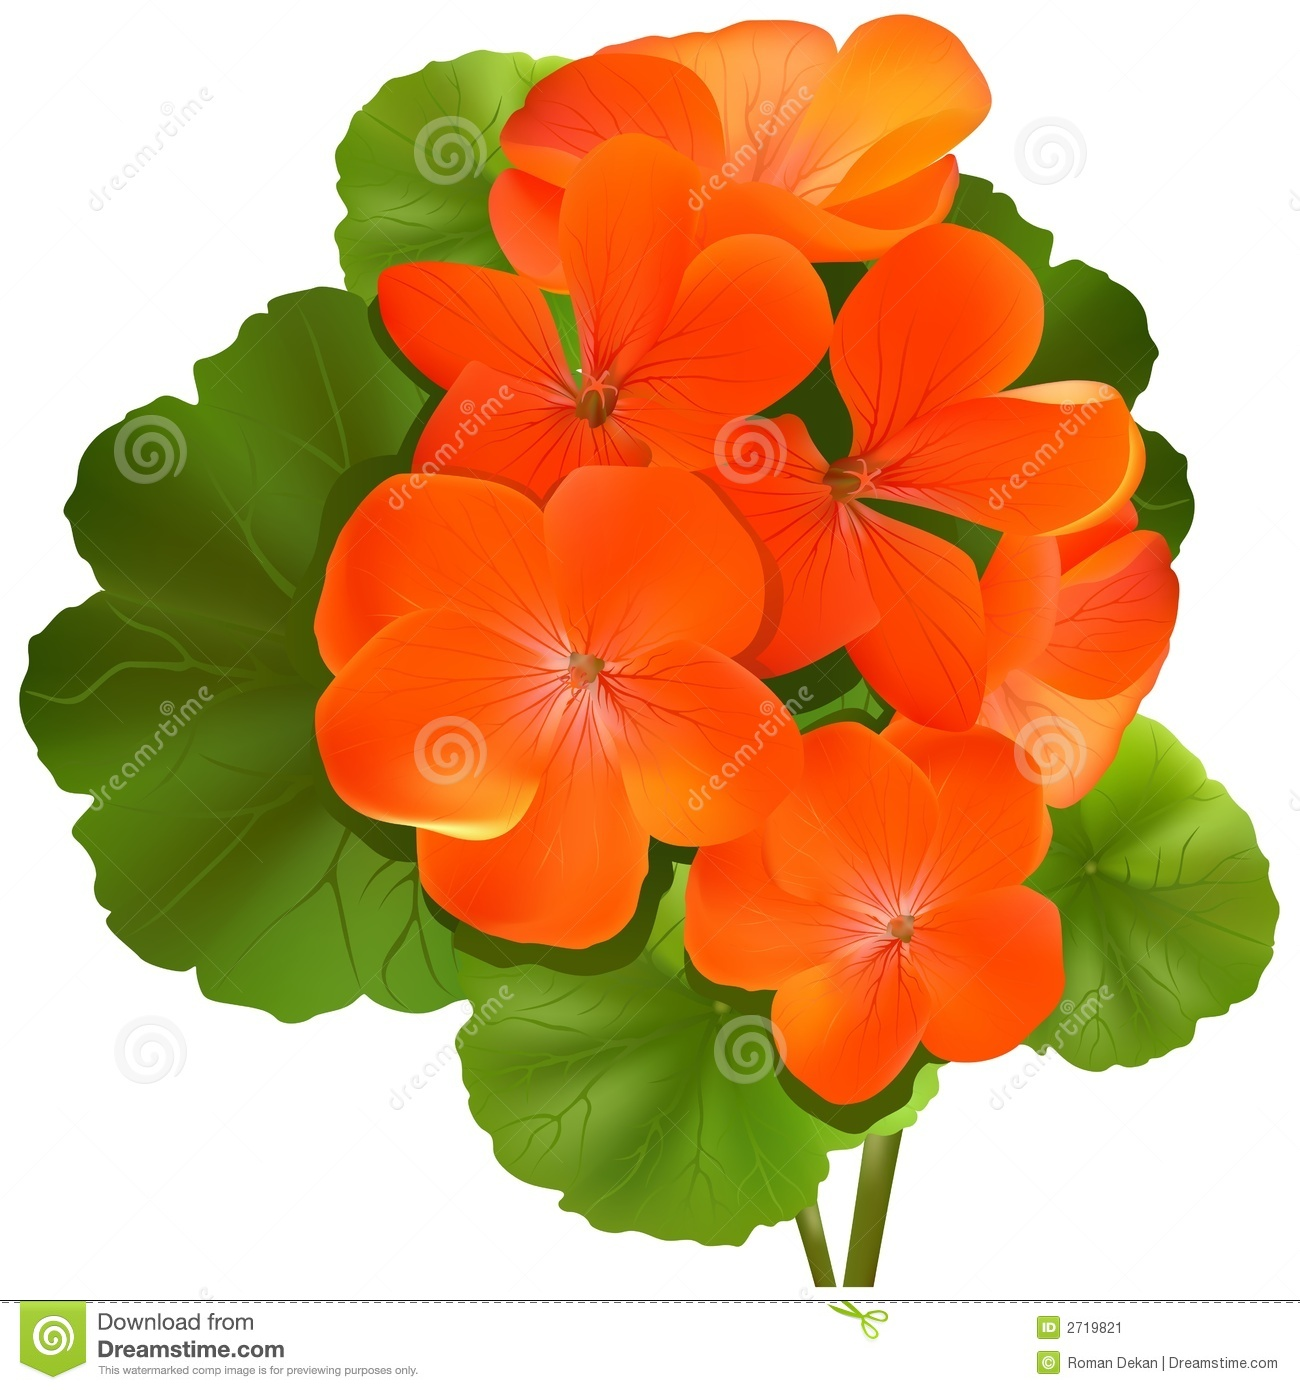 Geranium clipart #5, Download drawings